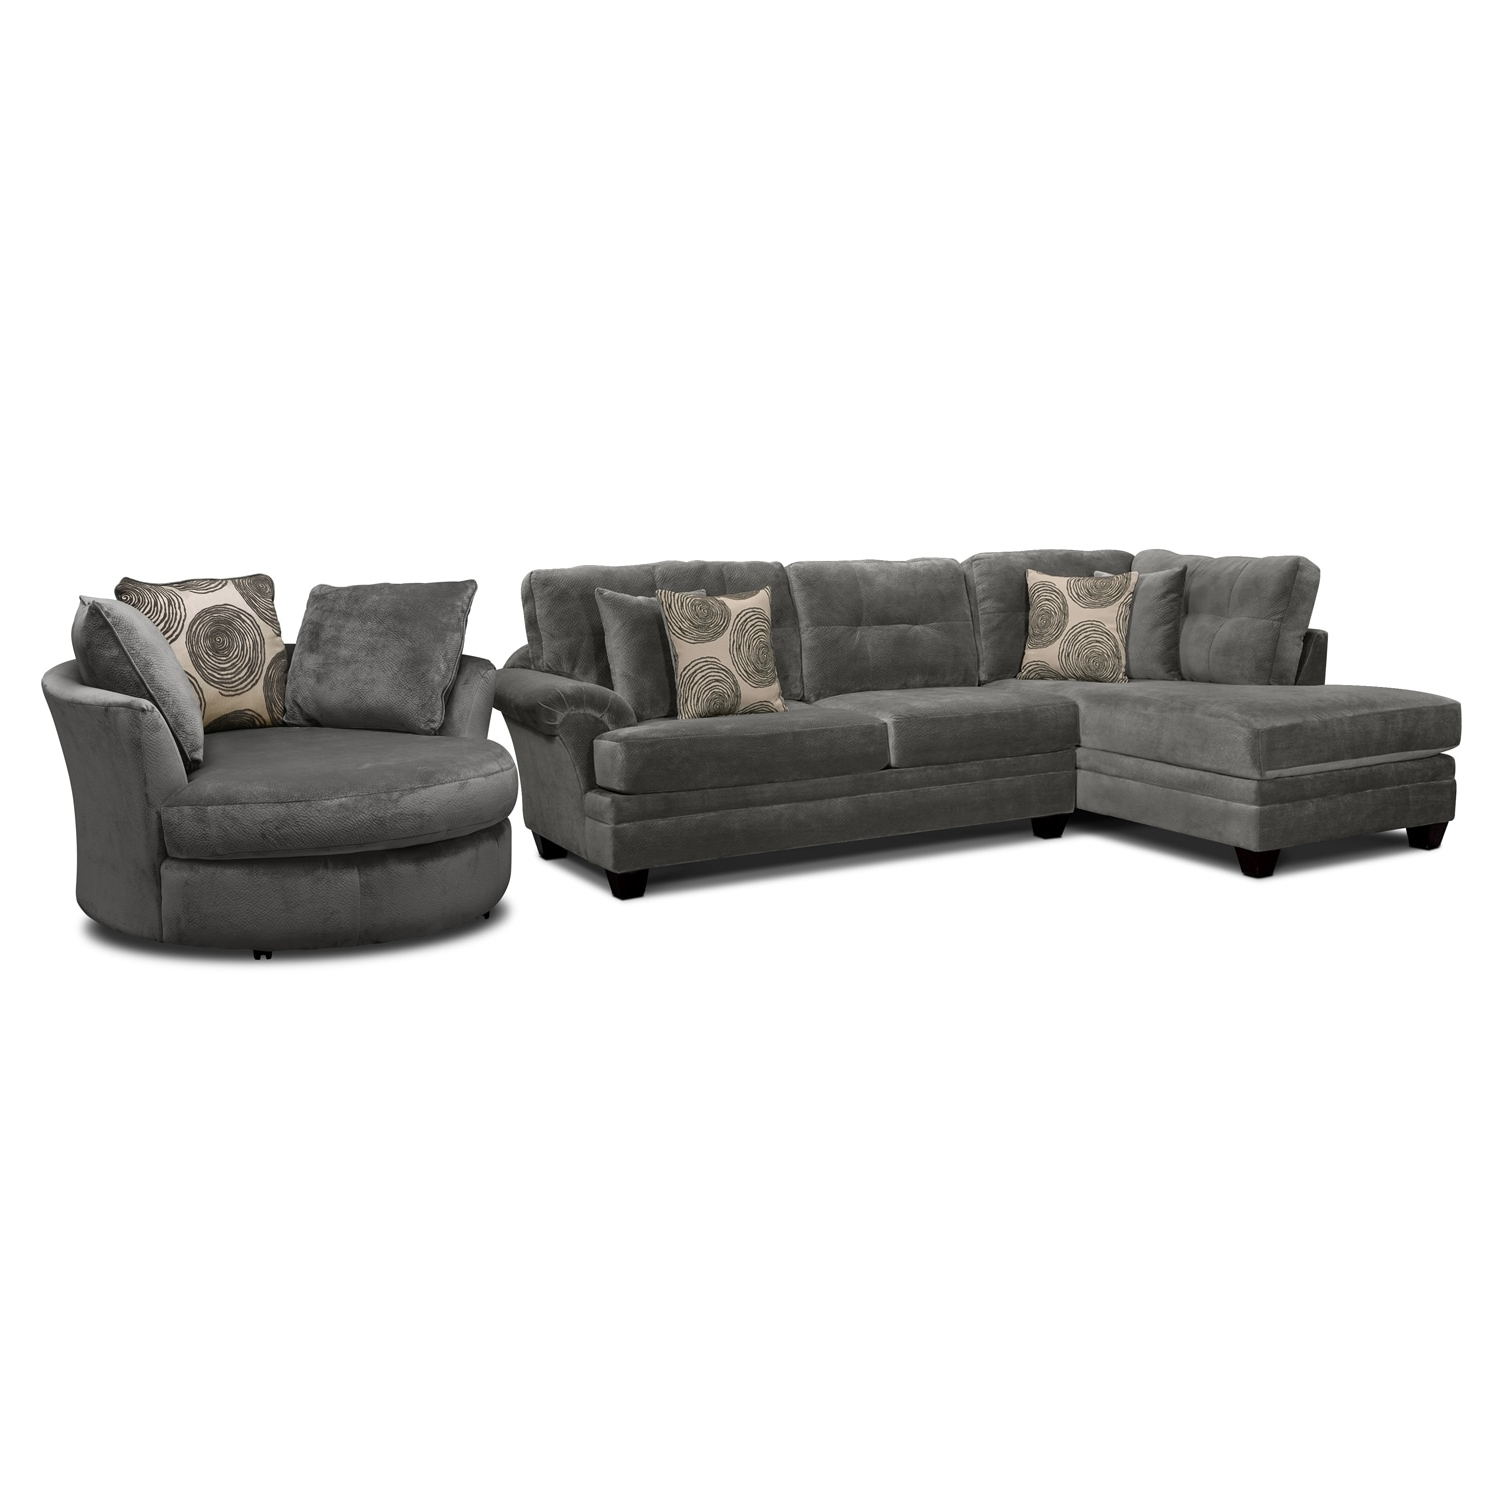 Preferred Cordelle 2 Piece Left Facing Chaise Sectional And Swivel Chair Set Inside Sofas With Swivel Chair (View 7 of 15)